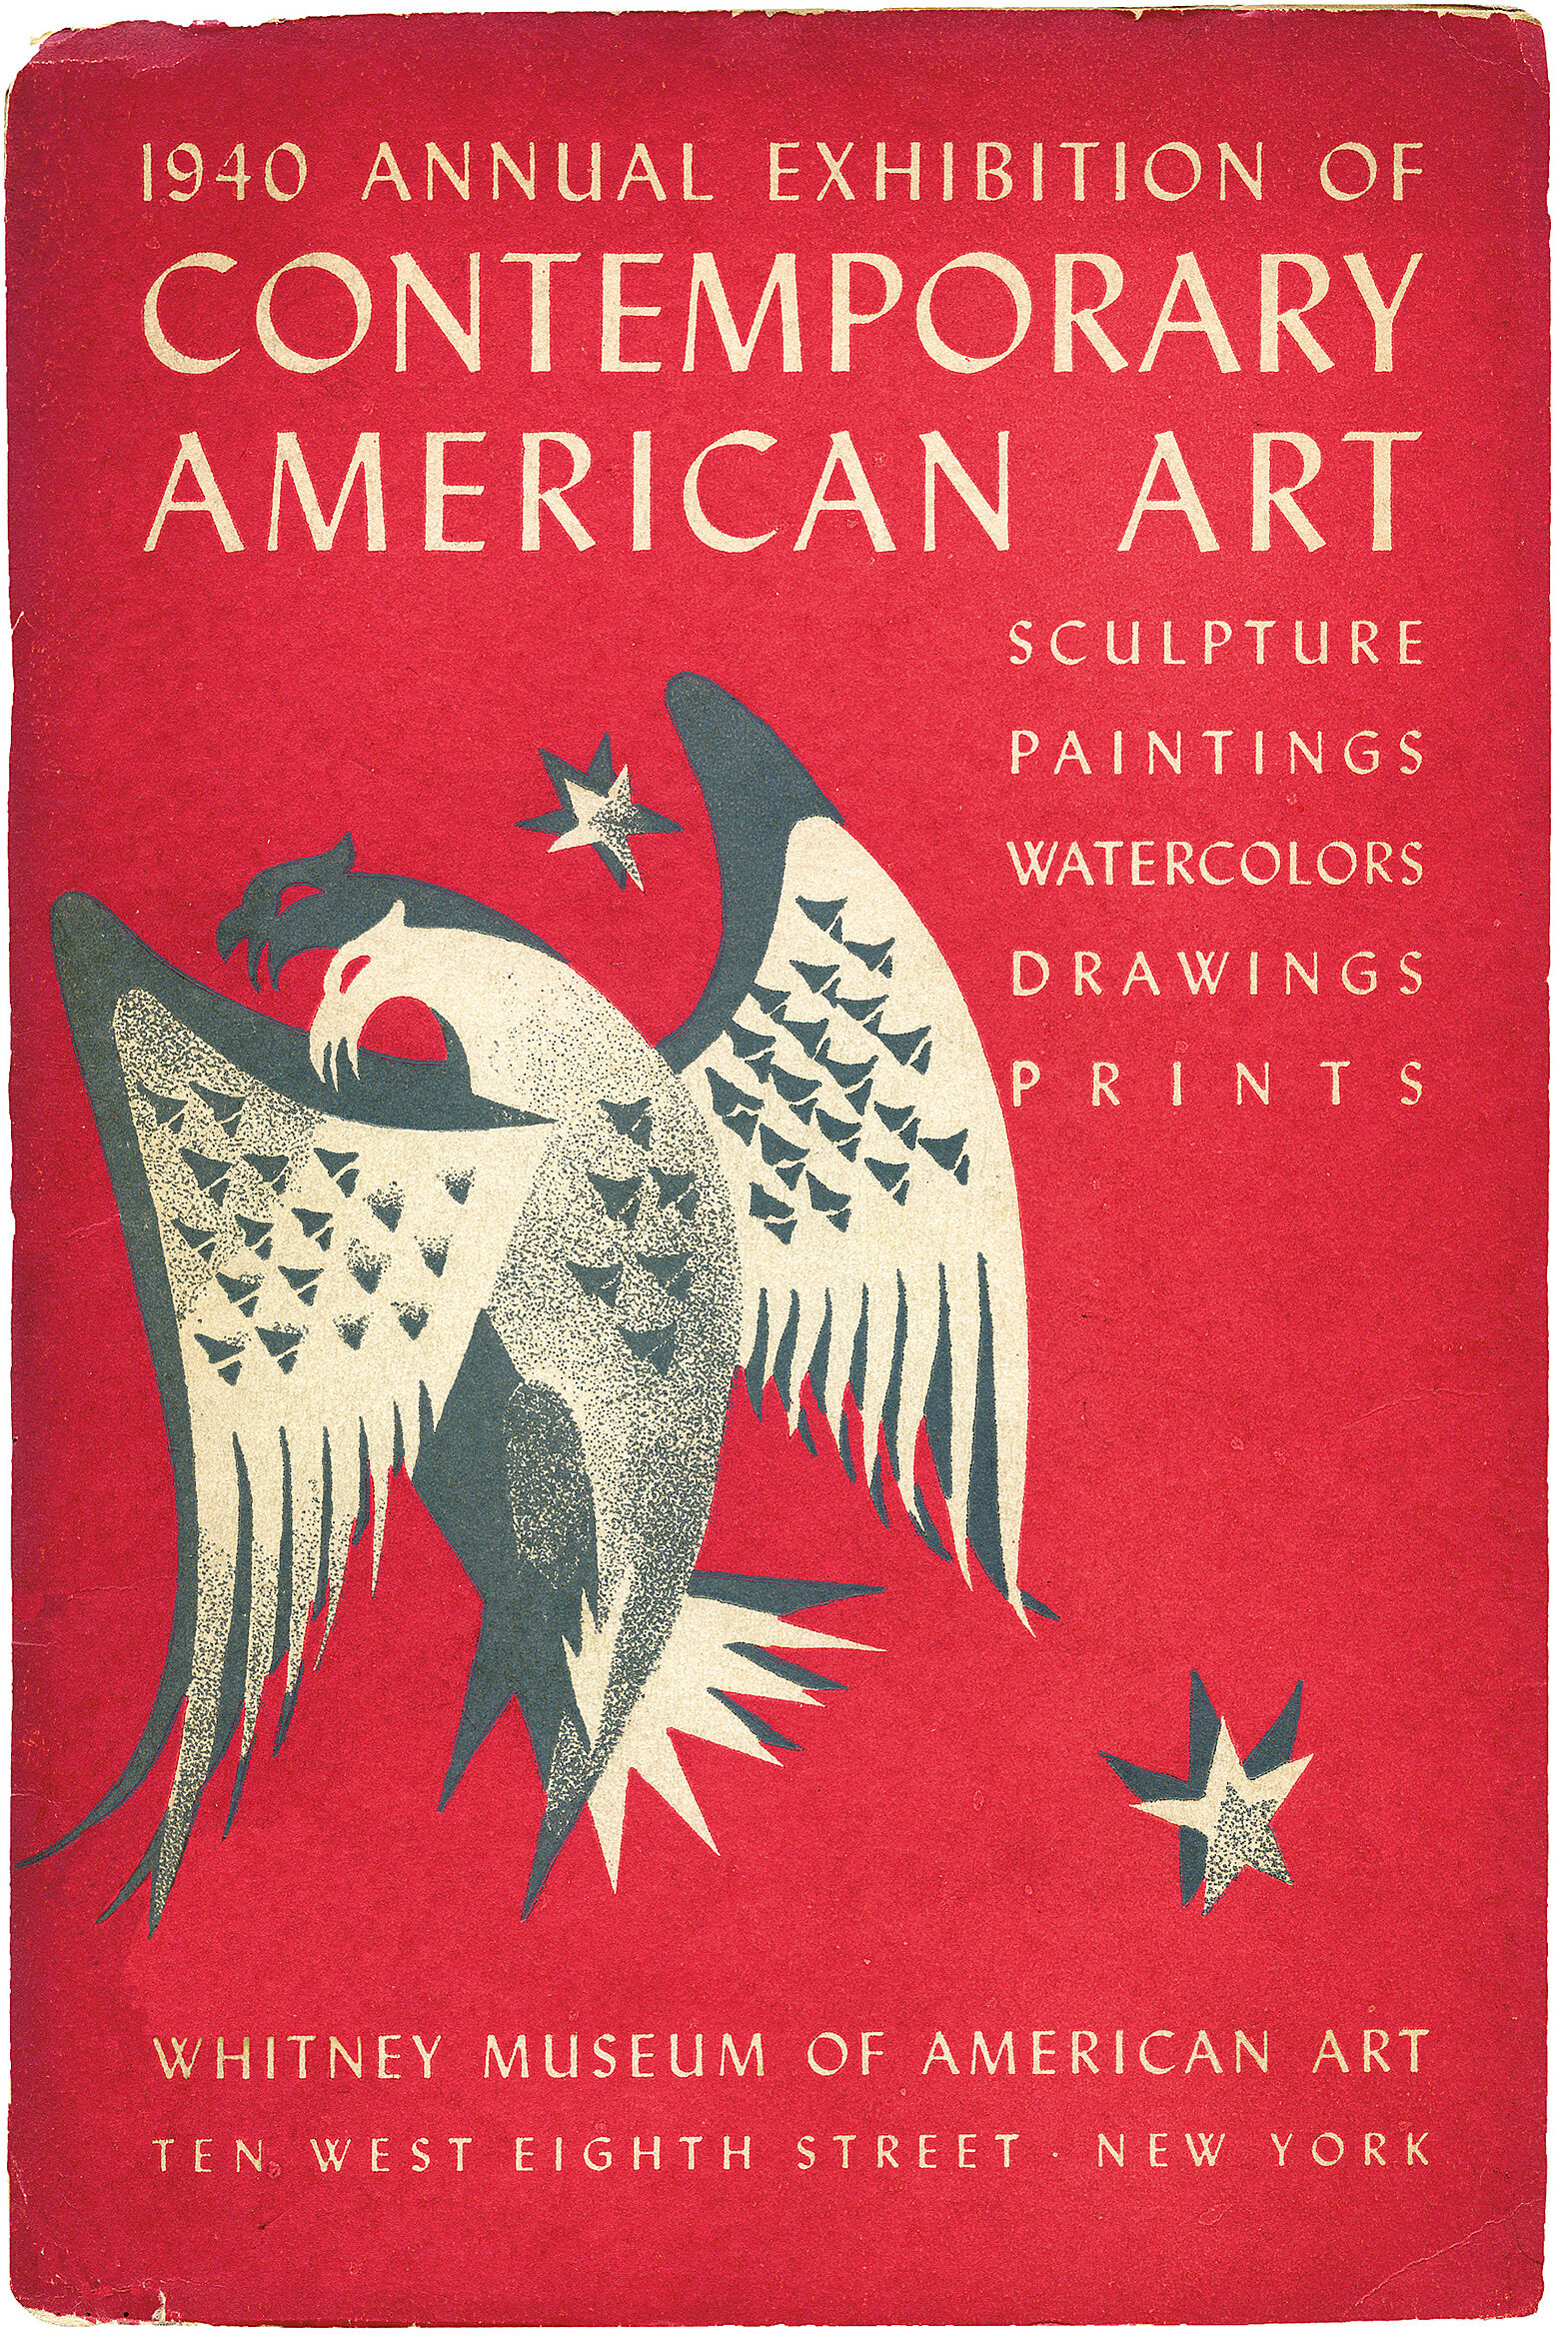 Cover for 1940 Annual Exhibition of Contemporary American Art catalogue